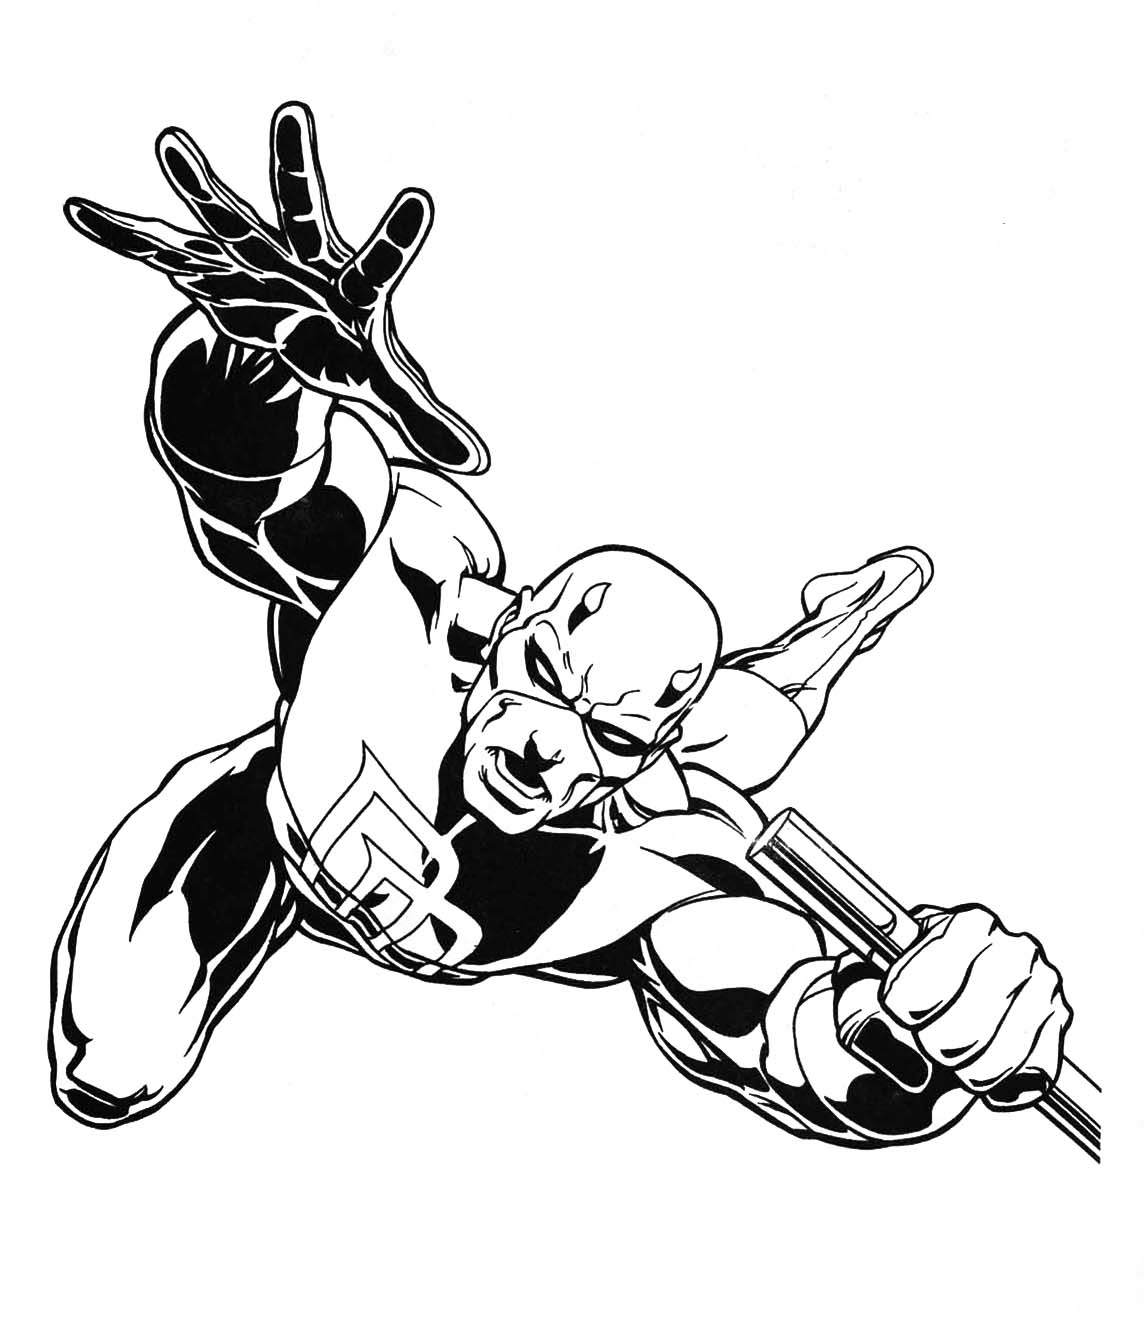 free printable daredevil coloring pages - photo#18